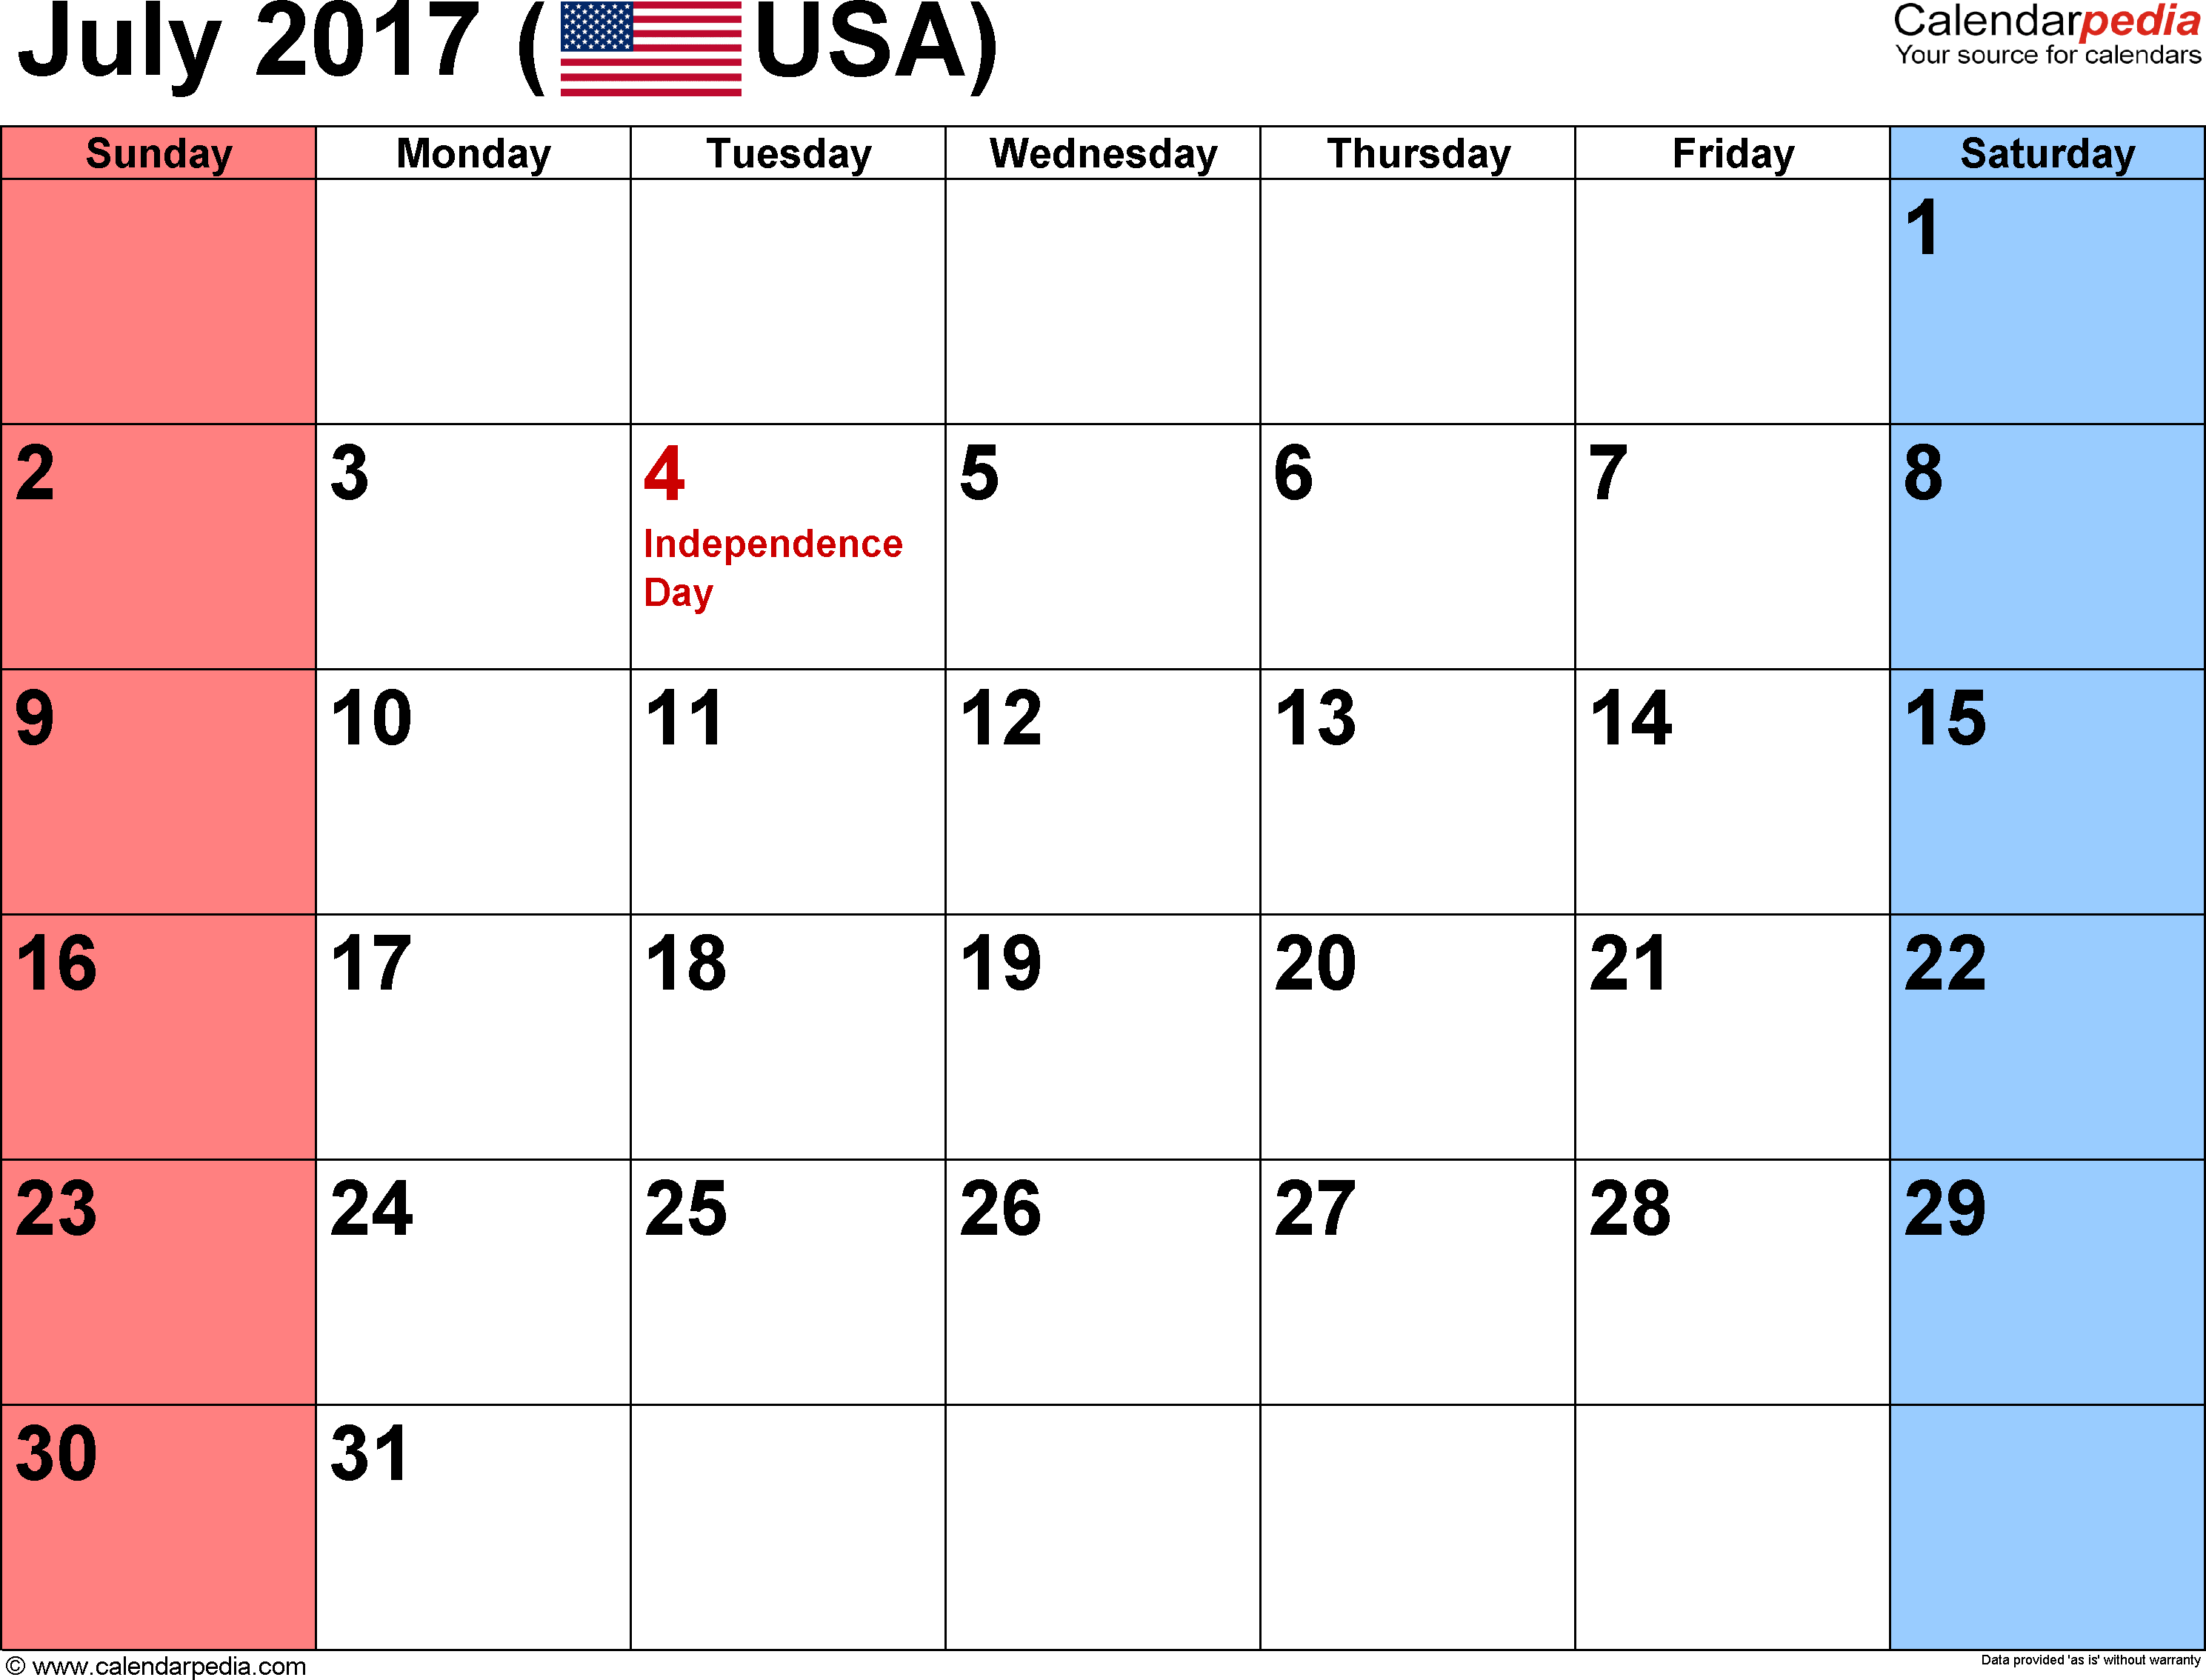 July 2017 Calendar Holidays, Blank July 2017 calendar